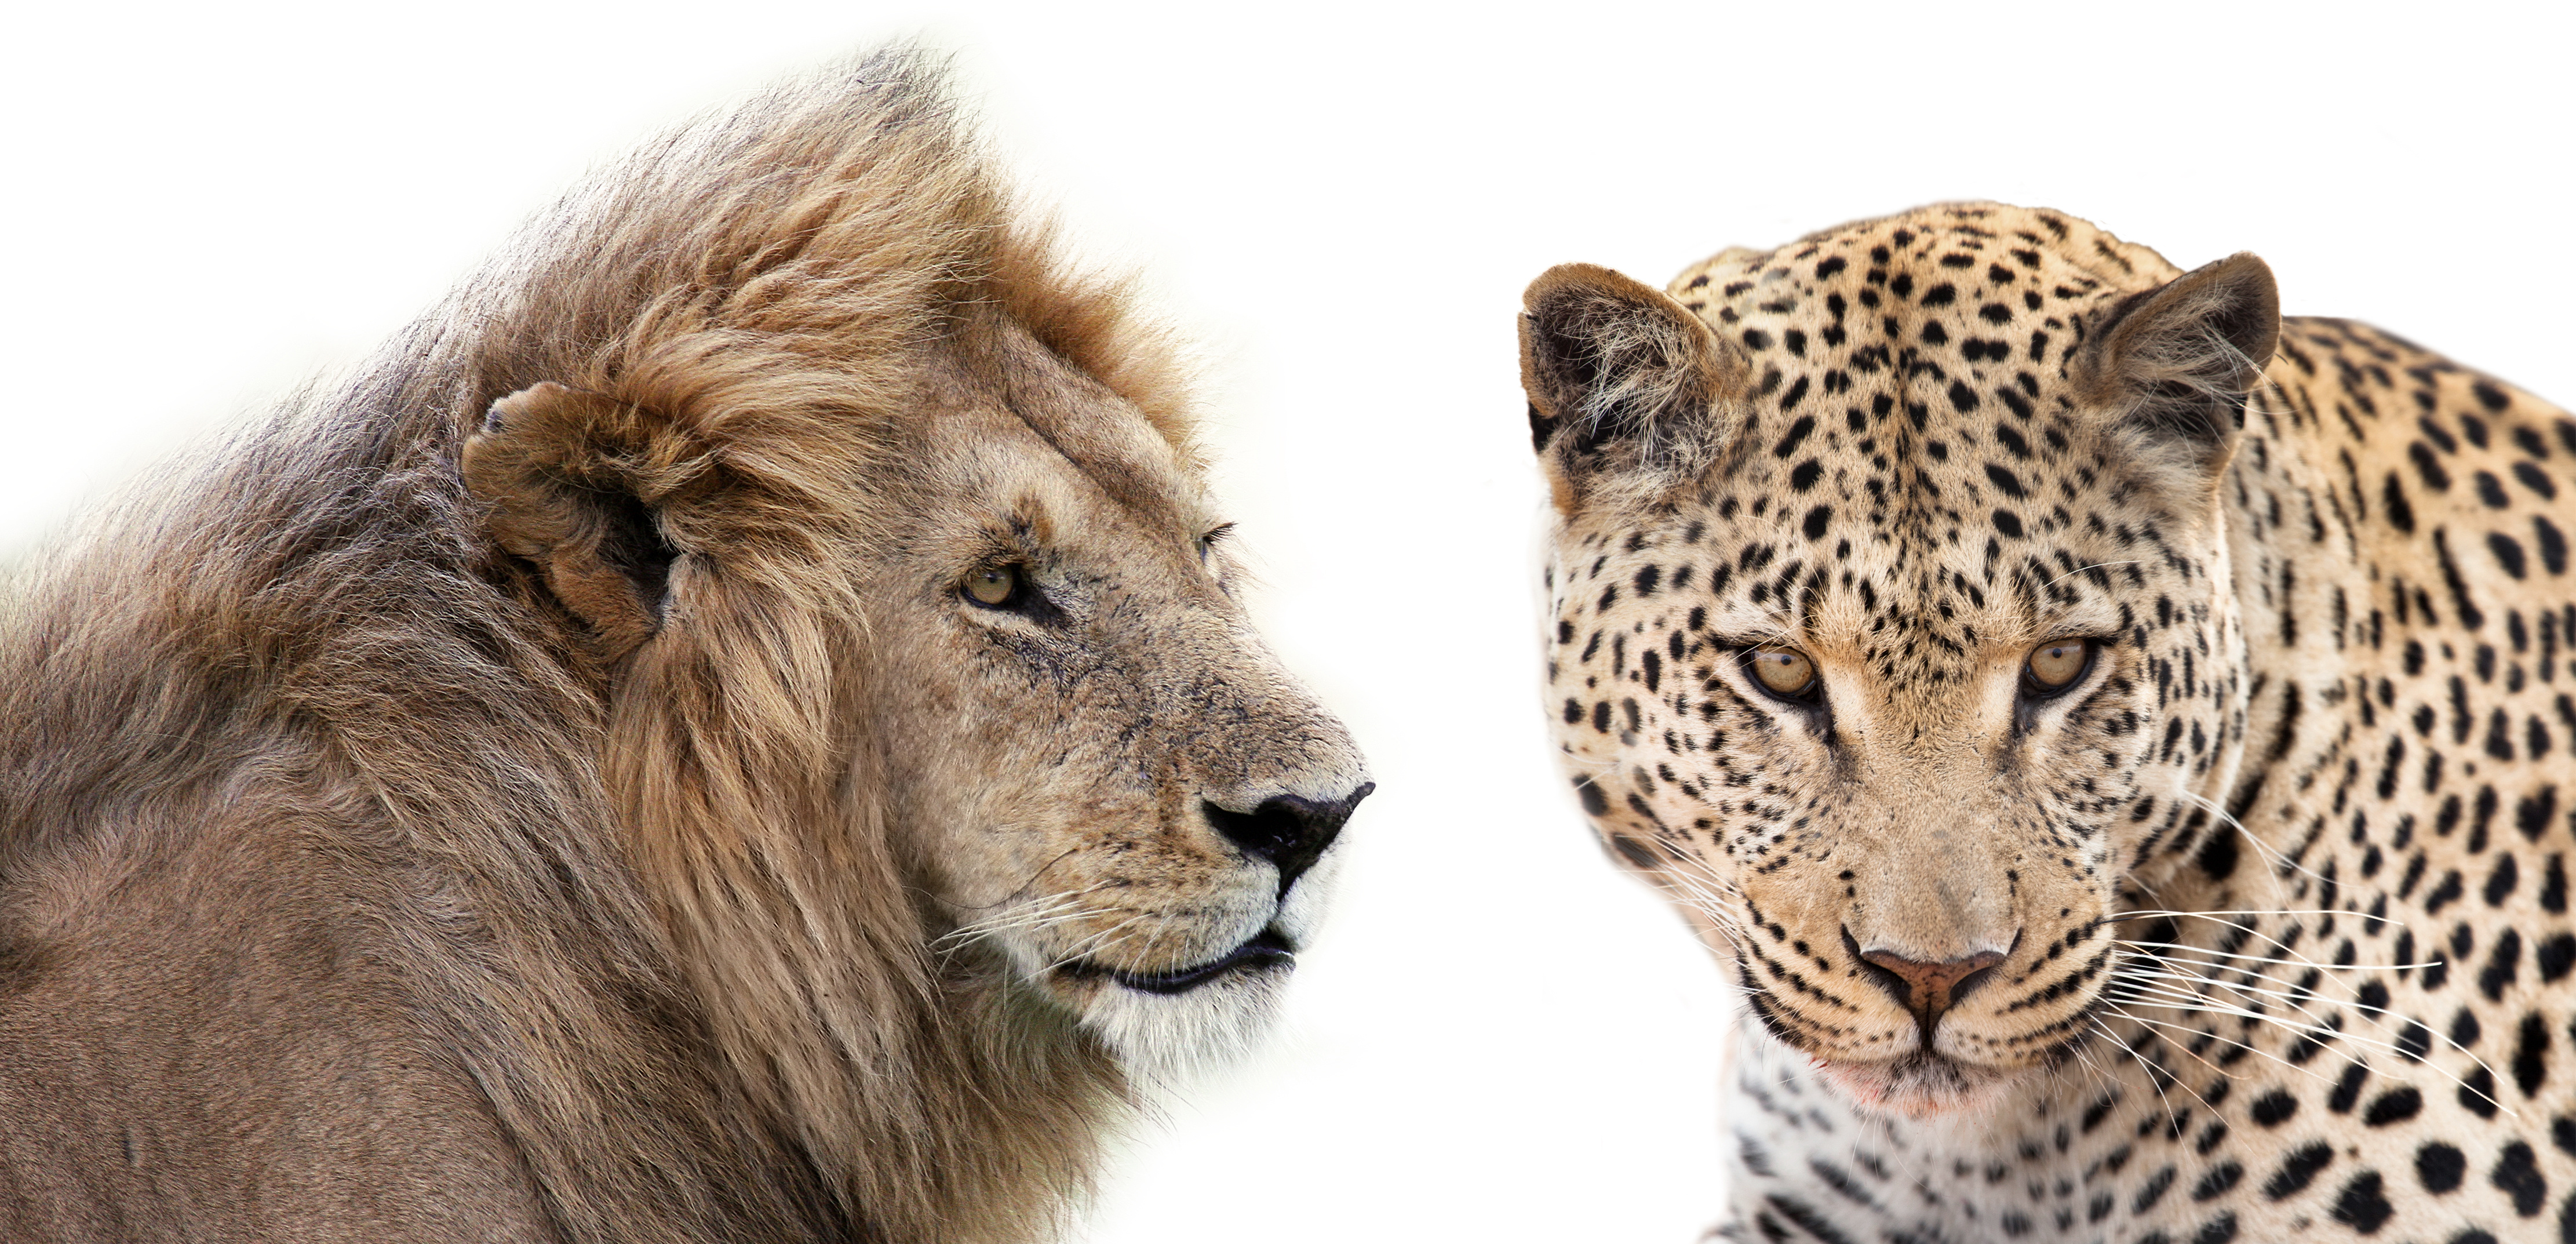 Lion and Leopard